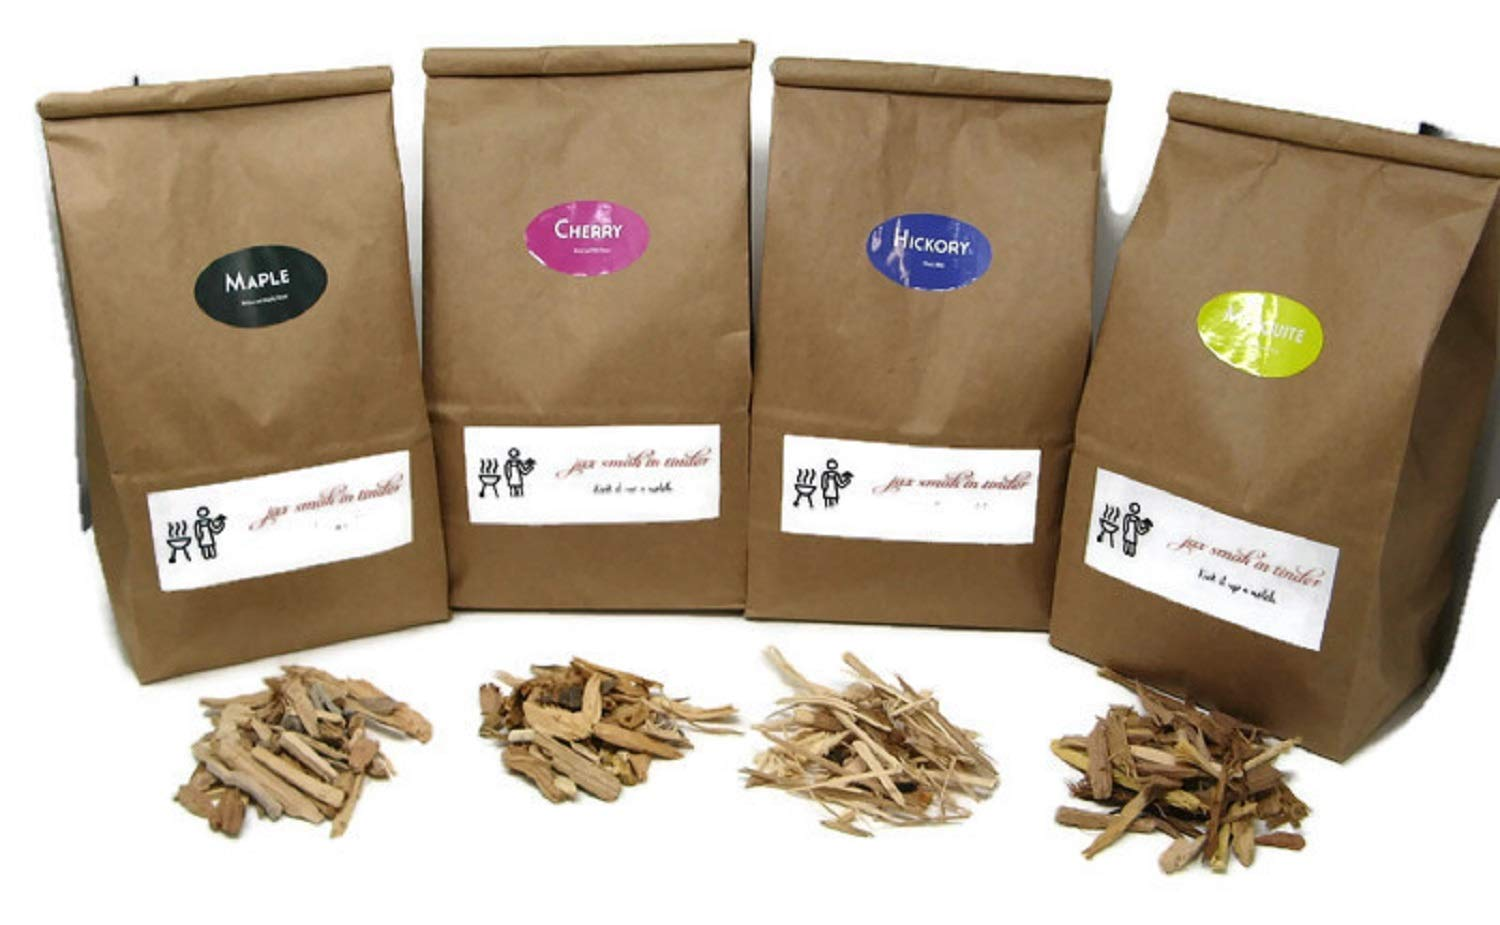 Jax Smok'in Tinder Premium BBQ Wood Chips for Smokers Variety Pack - Our Most Popular Medium Sized Smoker Chips - Hickory, Cherry, Mesquite and Maple Packed in 2.90 Liter Paper Bags by Jax Smok'in Tinder